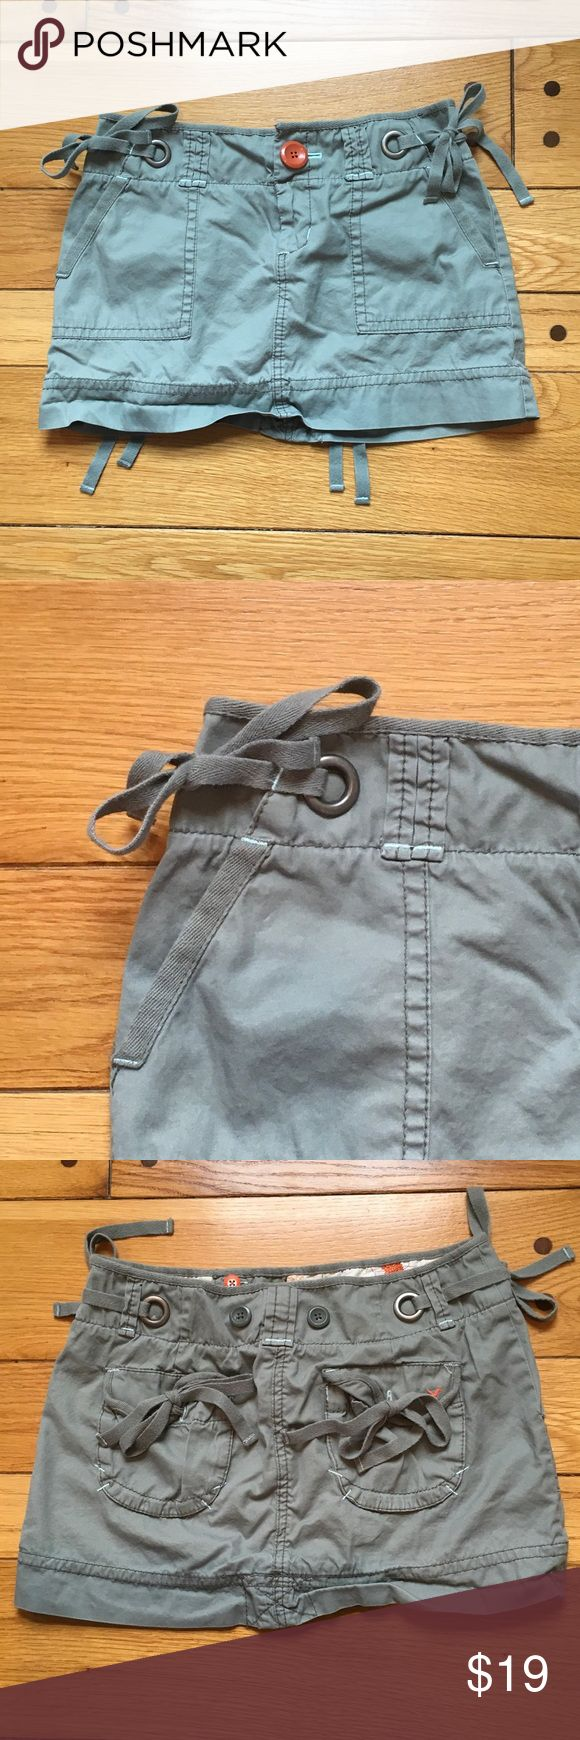 """American Eagle Outfitters Chino Style Mini Skirt Excellent condition. Chino style green khaki mini skirt with accent ties on both hips and both back pockets. Two front slant pockets. 100% cotton. When flat, waist measures approx. 14.5"""" across and 12"""" from top to bottom. American Eagle Outfitters Skirts Mini"""